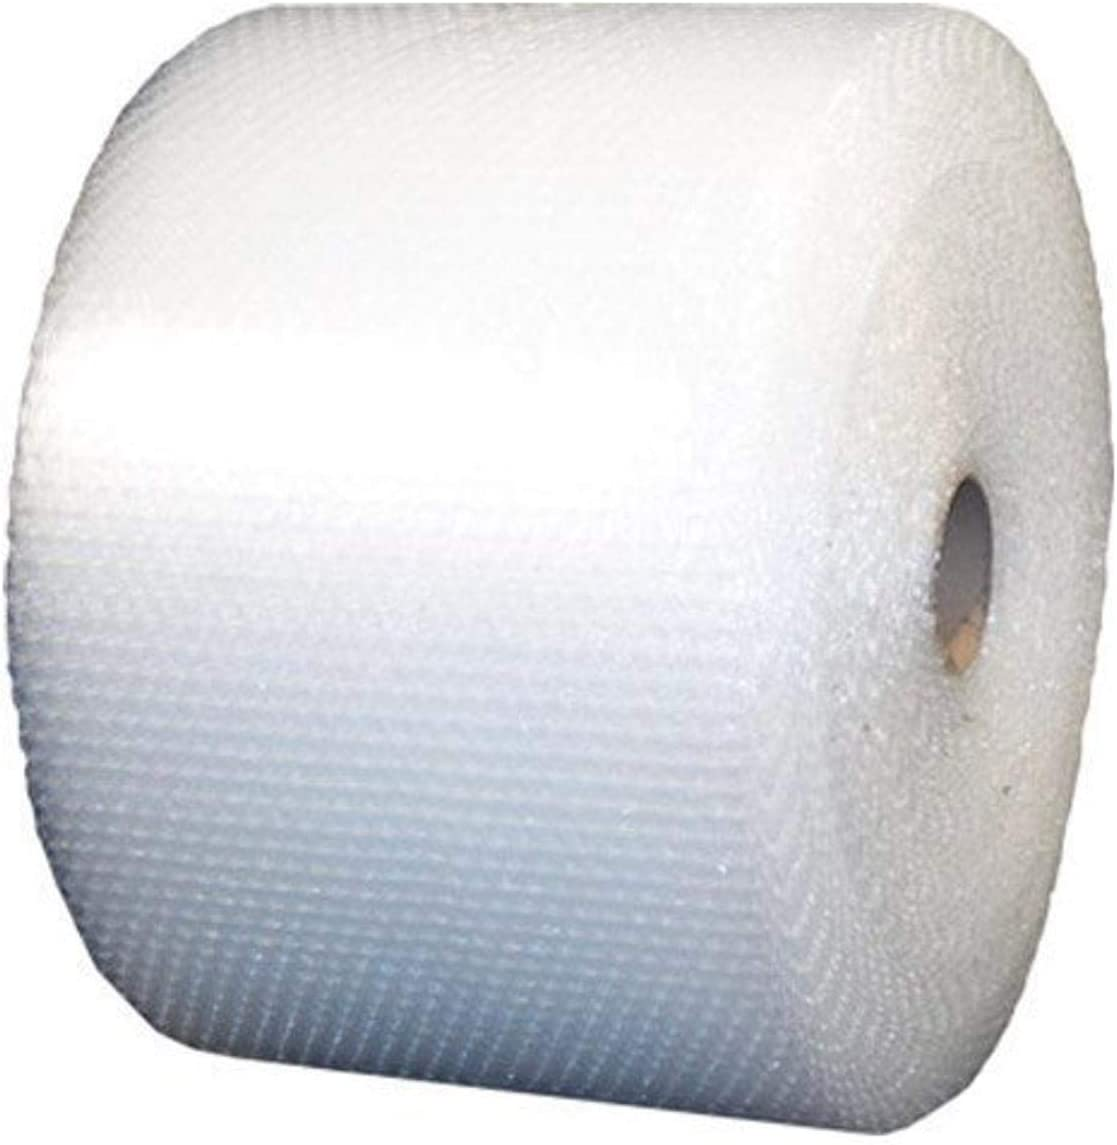 Yens Elite Cushioning Roll 3/16 Perforated 12 Bubble Rolls Small 12 Width 700 feet : Office Products